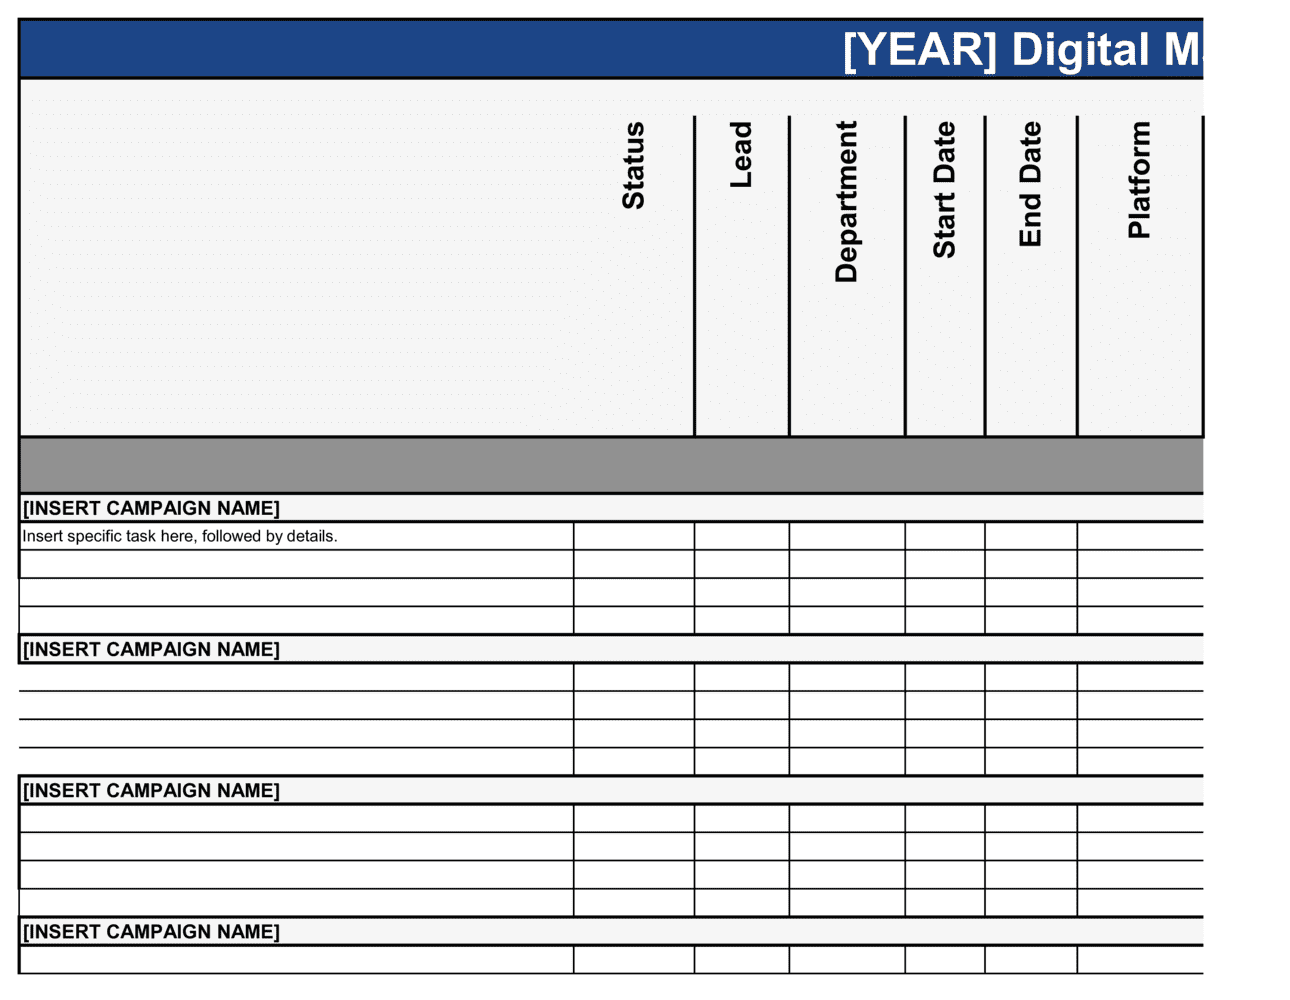 Business-in-a-Box's Digital Marketing Campaign Plan Template